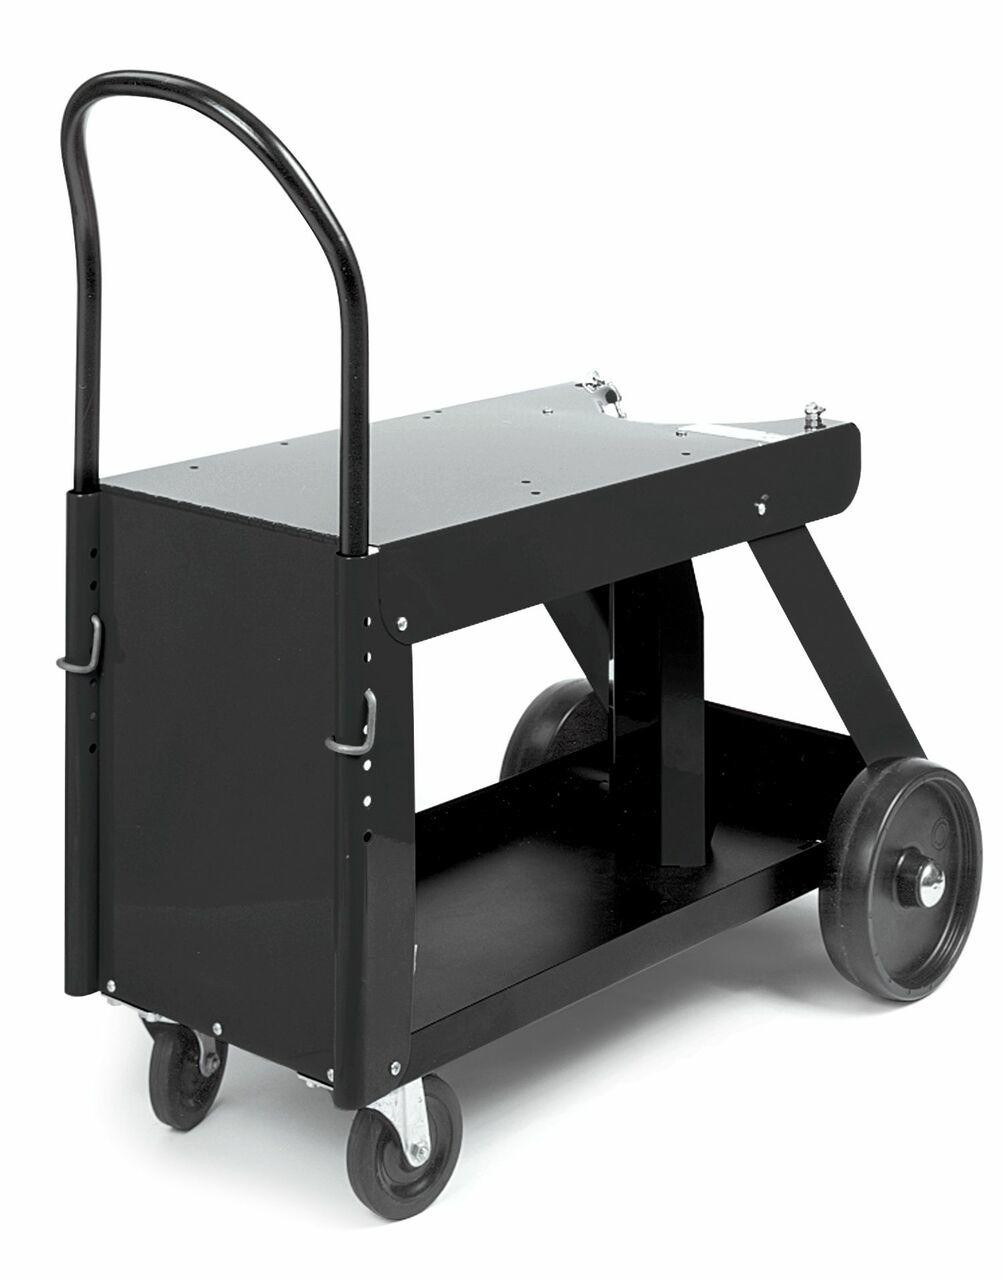 Lincoln Electric Lincoln Electric Utility Cart 150 cuft Bottle Capacity - K520